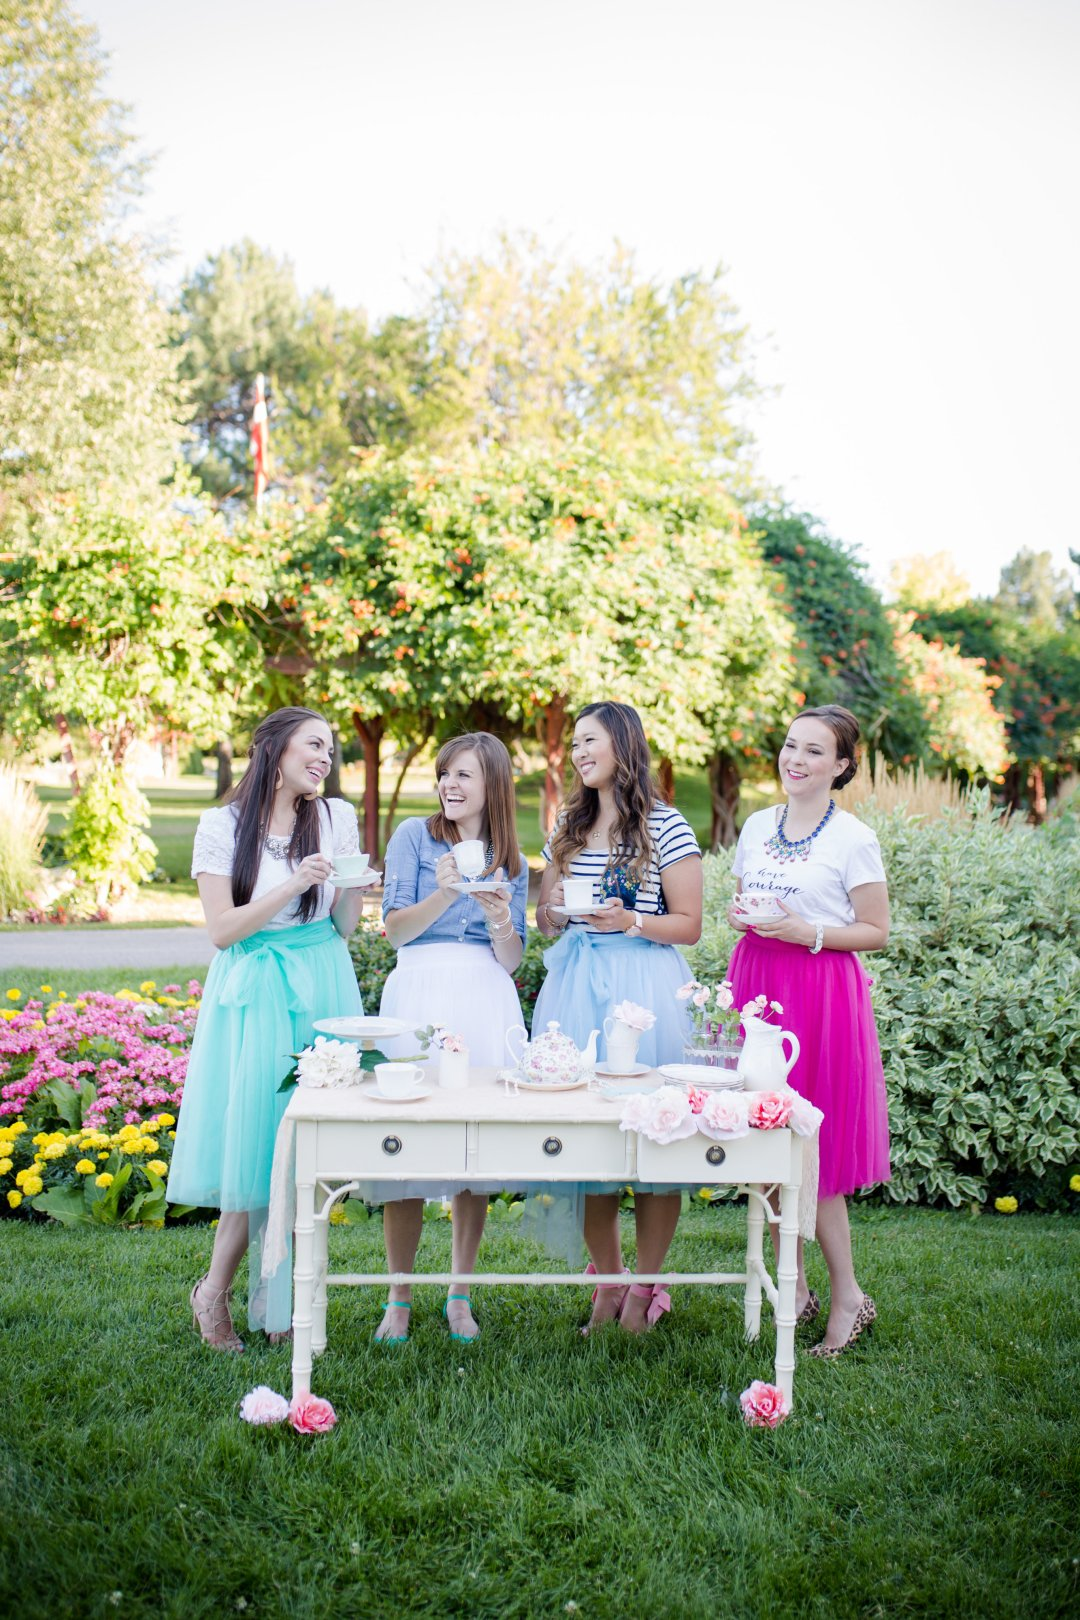 View More: http://charissaleephoto.pass.us/blogger-tea-party